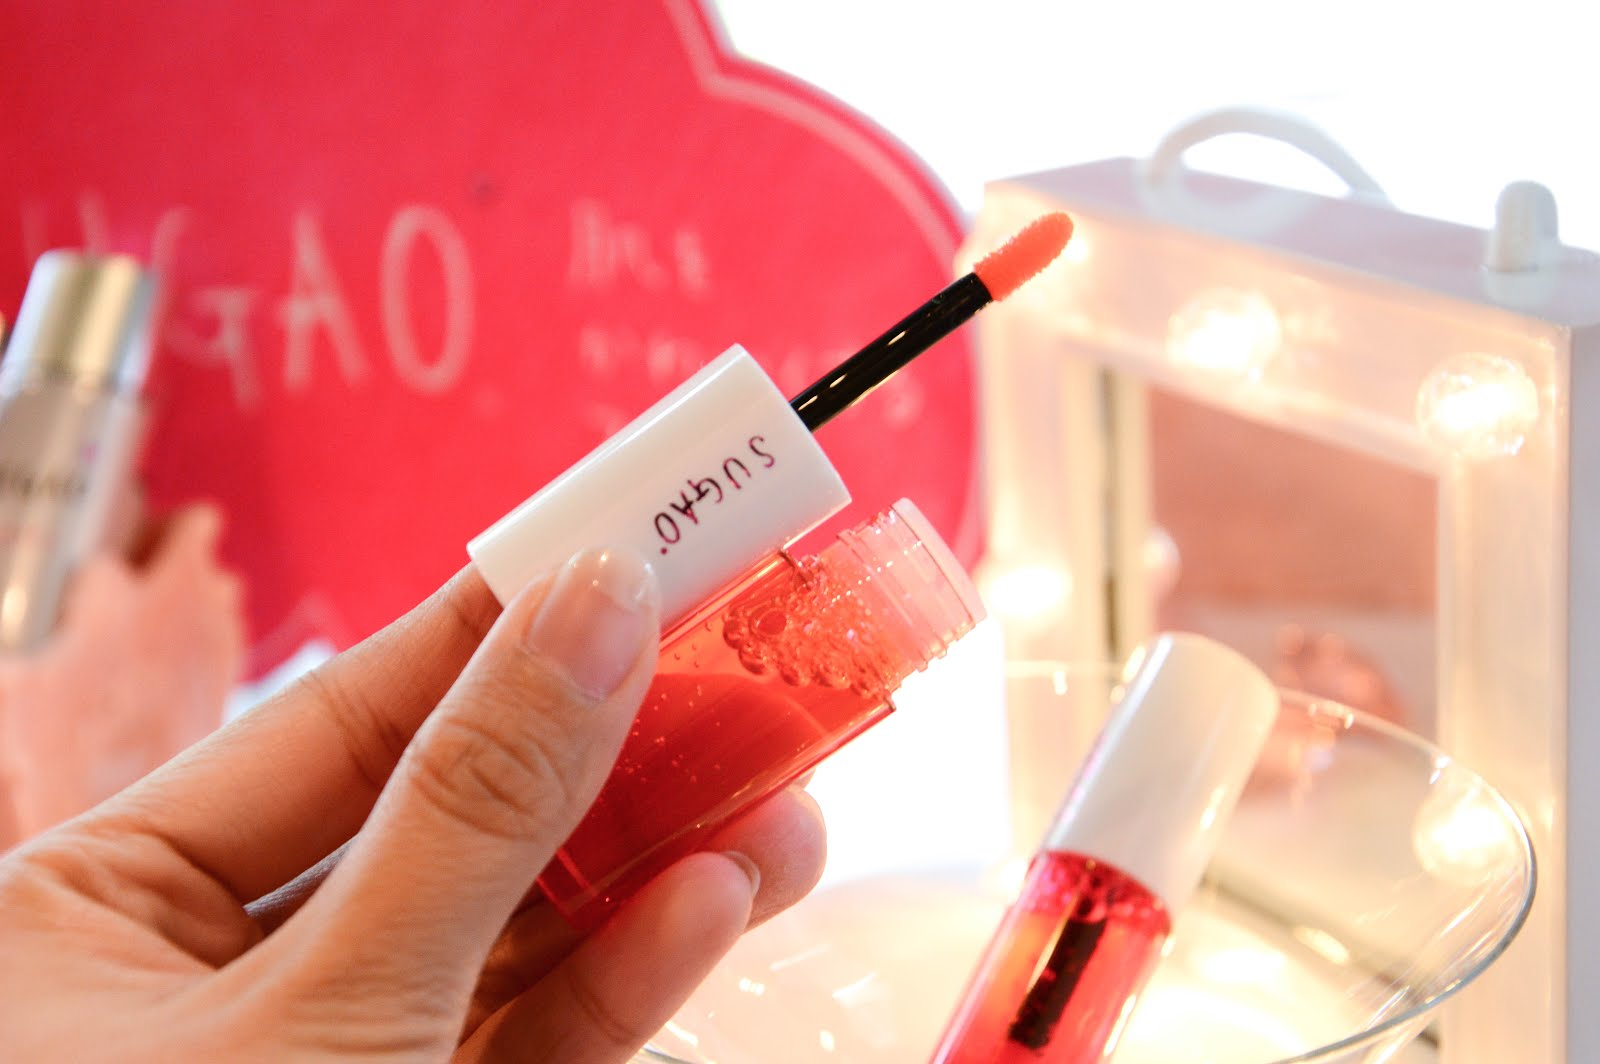 sugao lip tint review